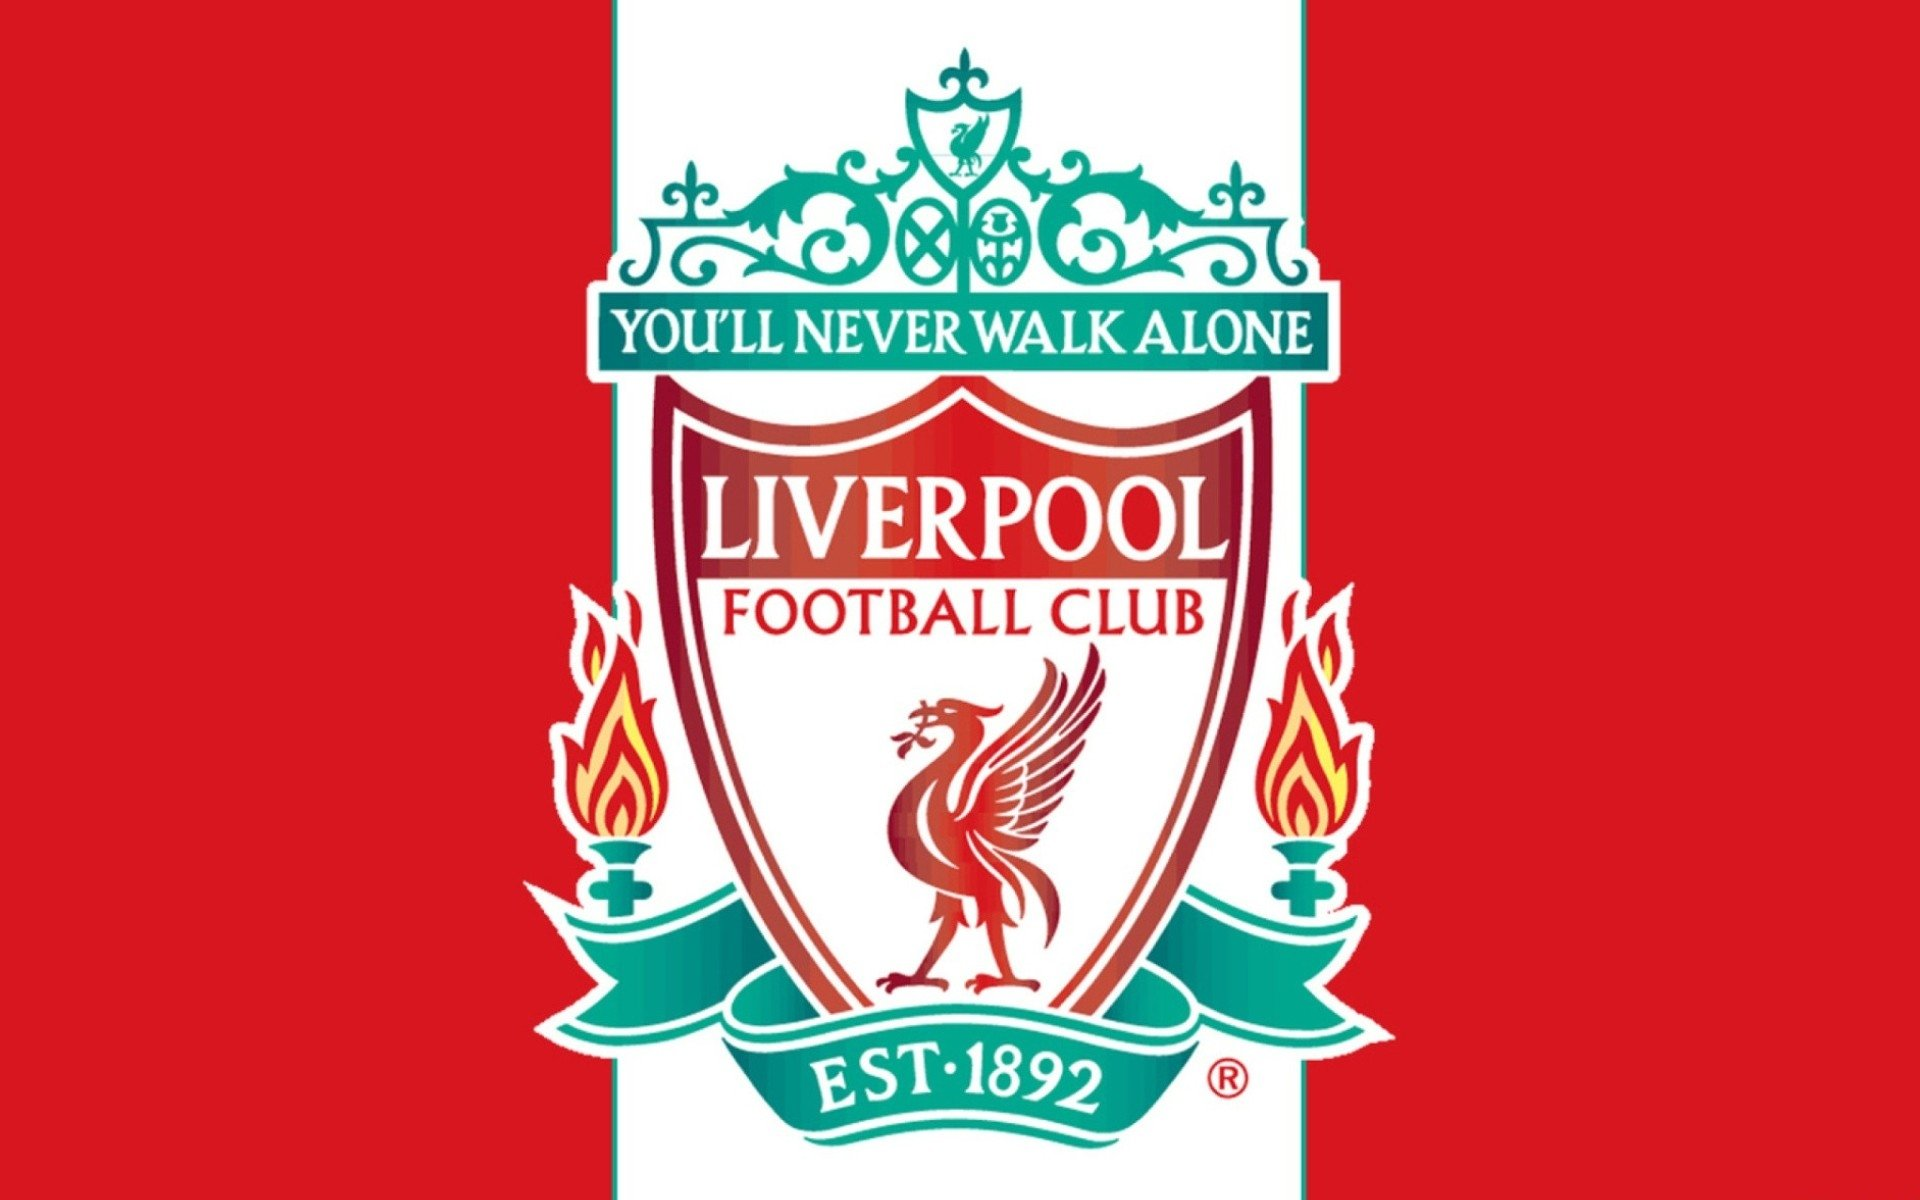 You Ll Never Walk Alone Hd Wallpaper Background Image